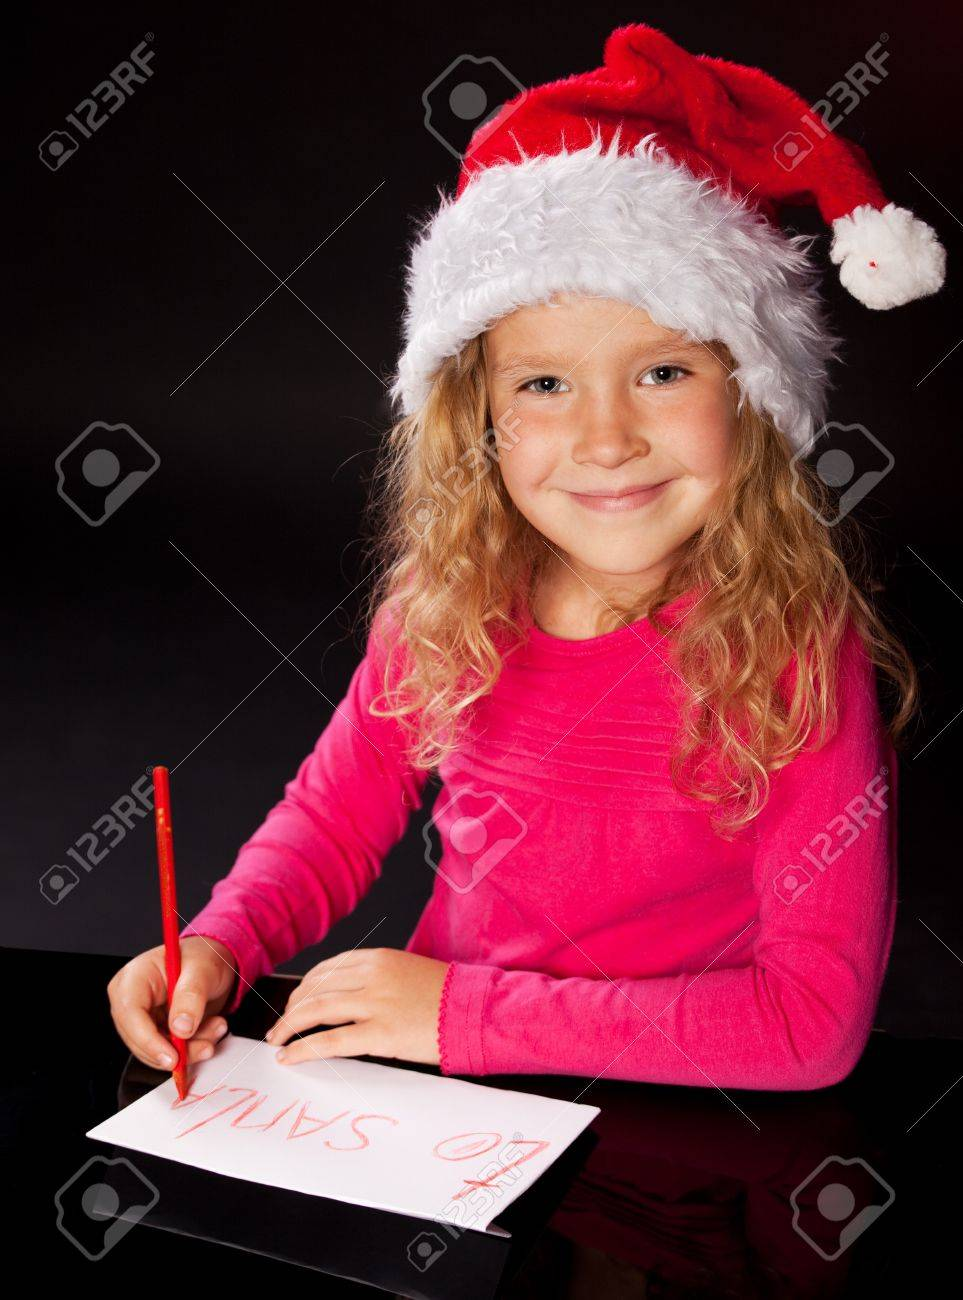 Child Writing A Letter To Santa Claus. Little Girl Stock Photo